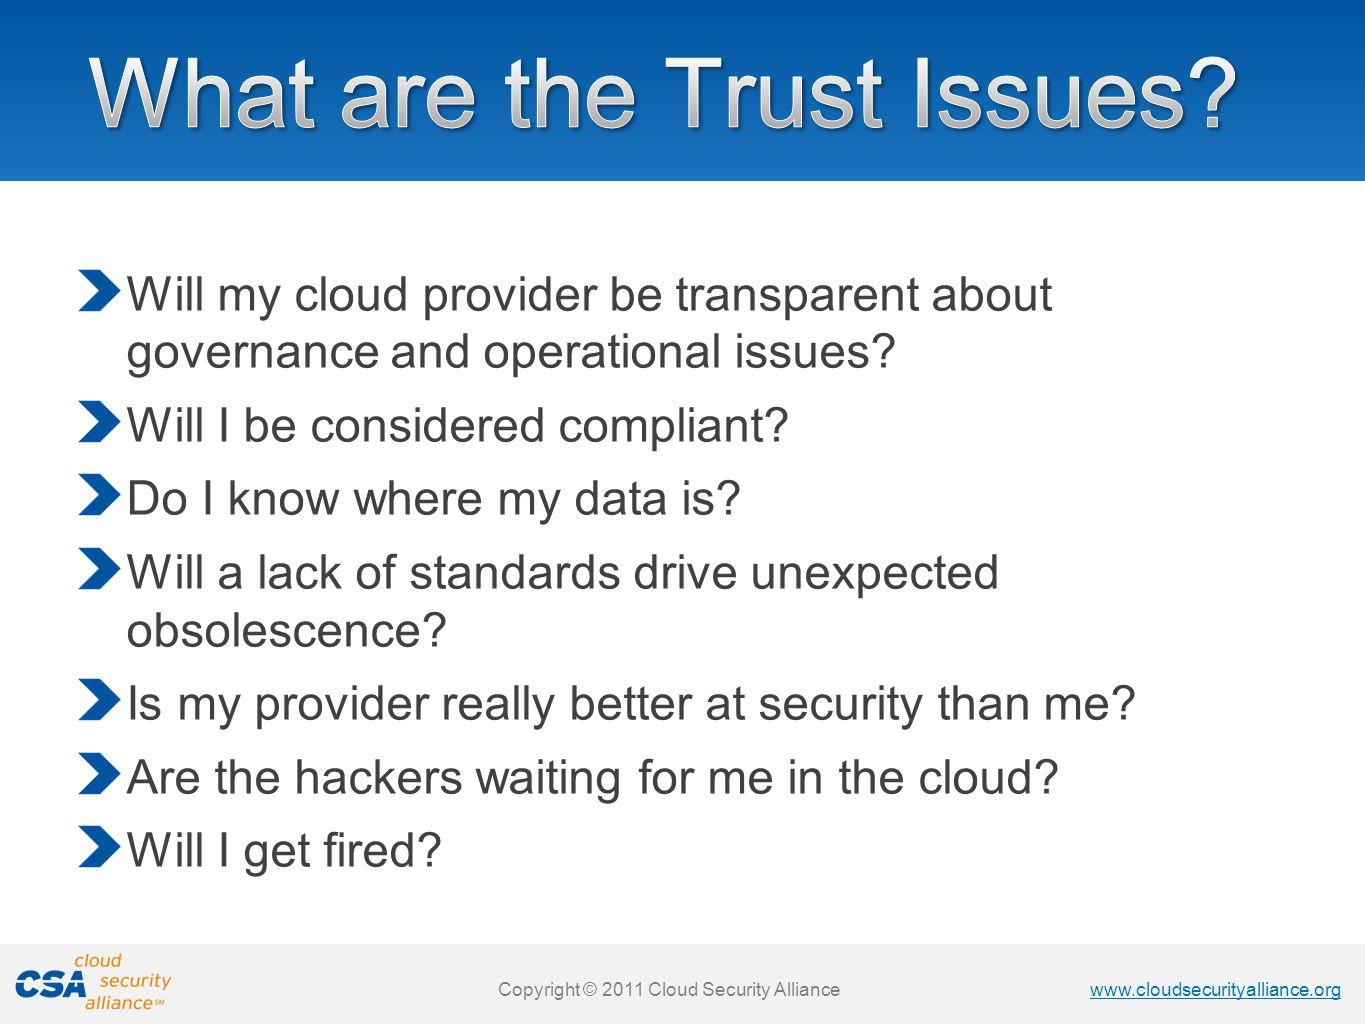 www.cloudsecurityalliance.org Copyright © 2011 Cloud Security Alliance www.cloudsecurityalliance.org Copyright © 2011 Cloud Security Alliance Will my cloud provider be transparent about governance and operational issues.